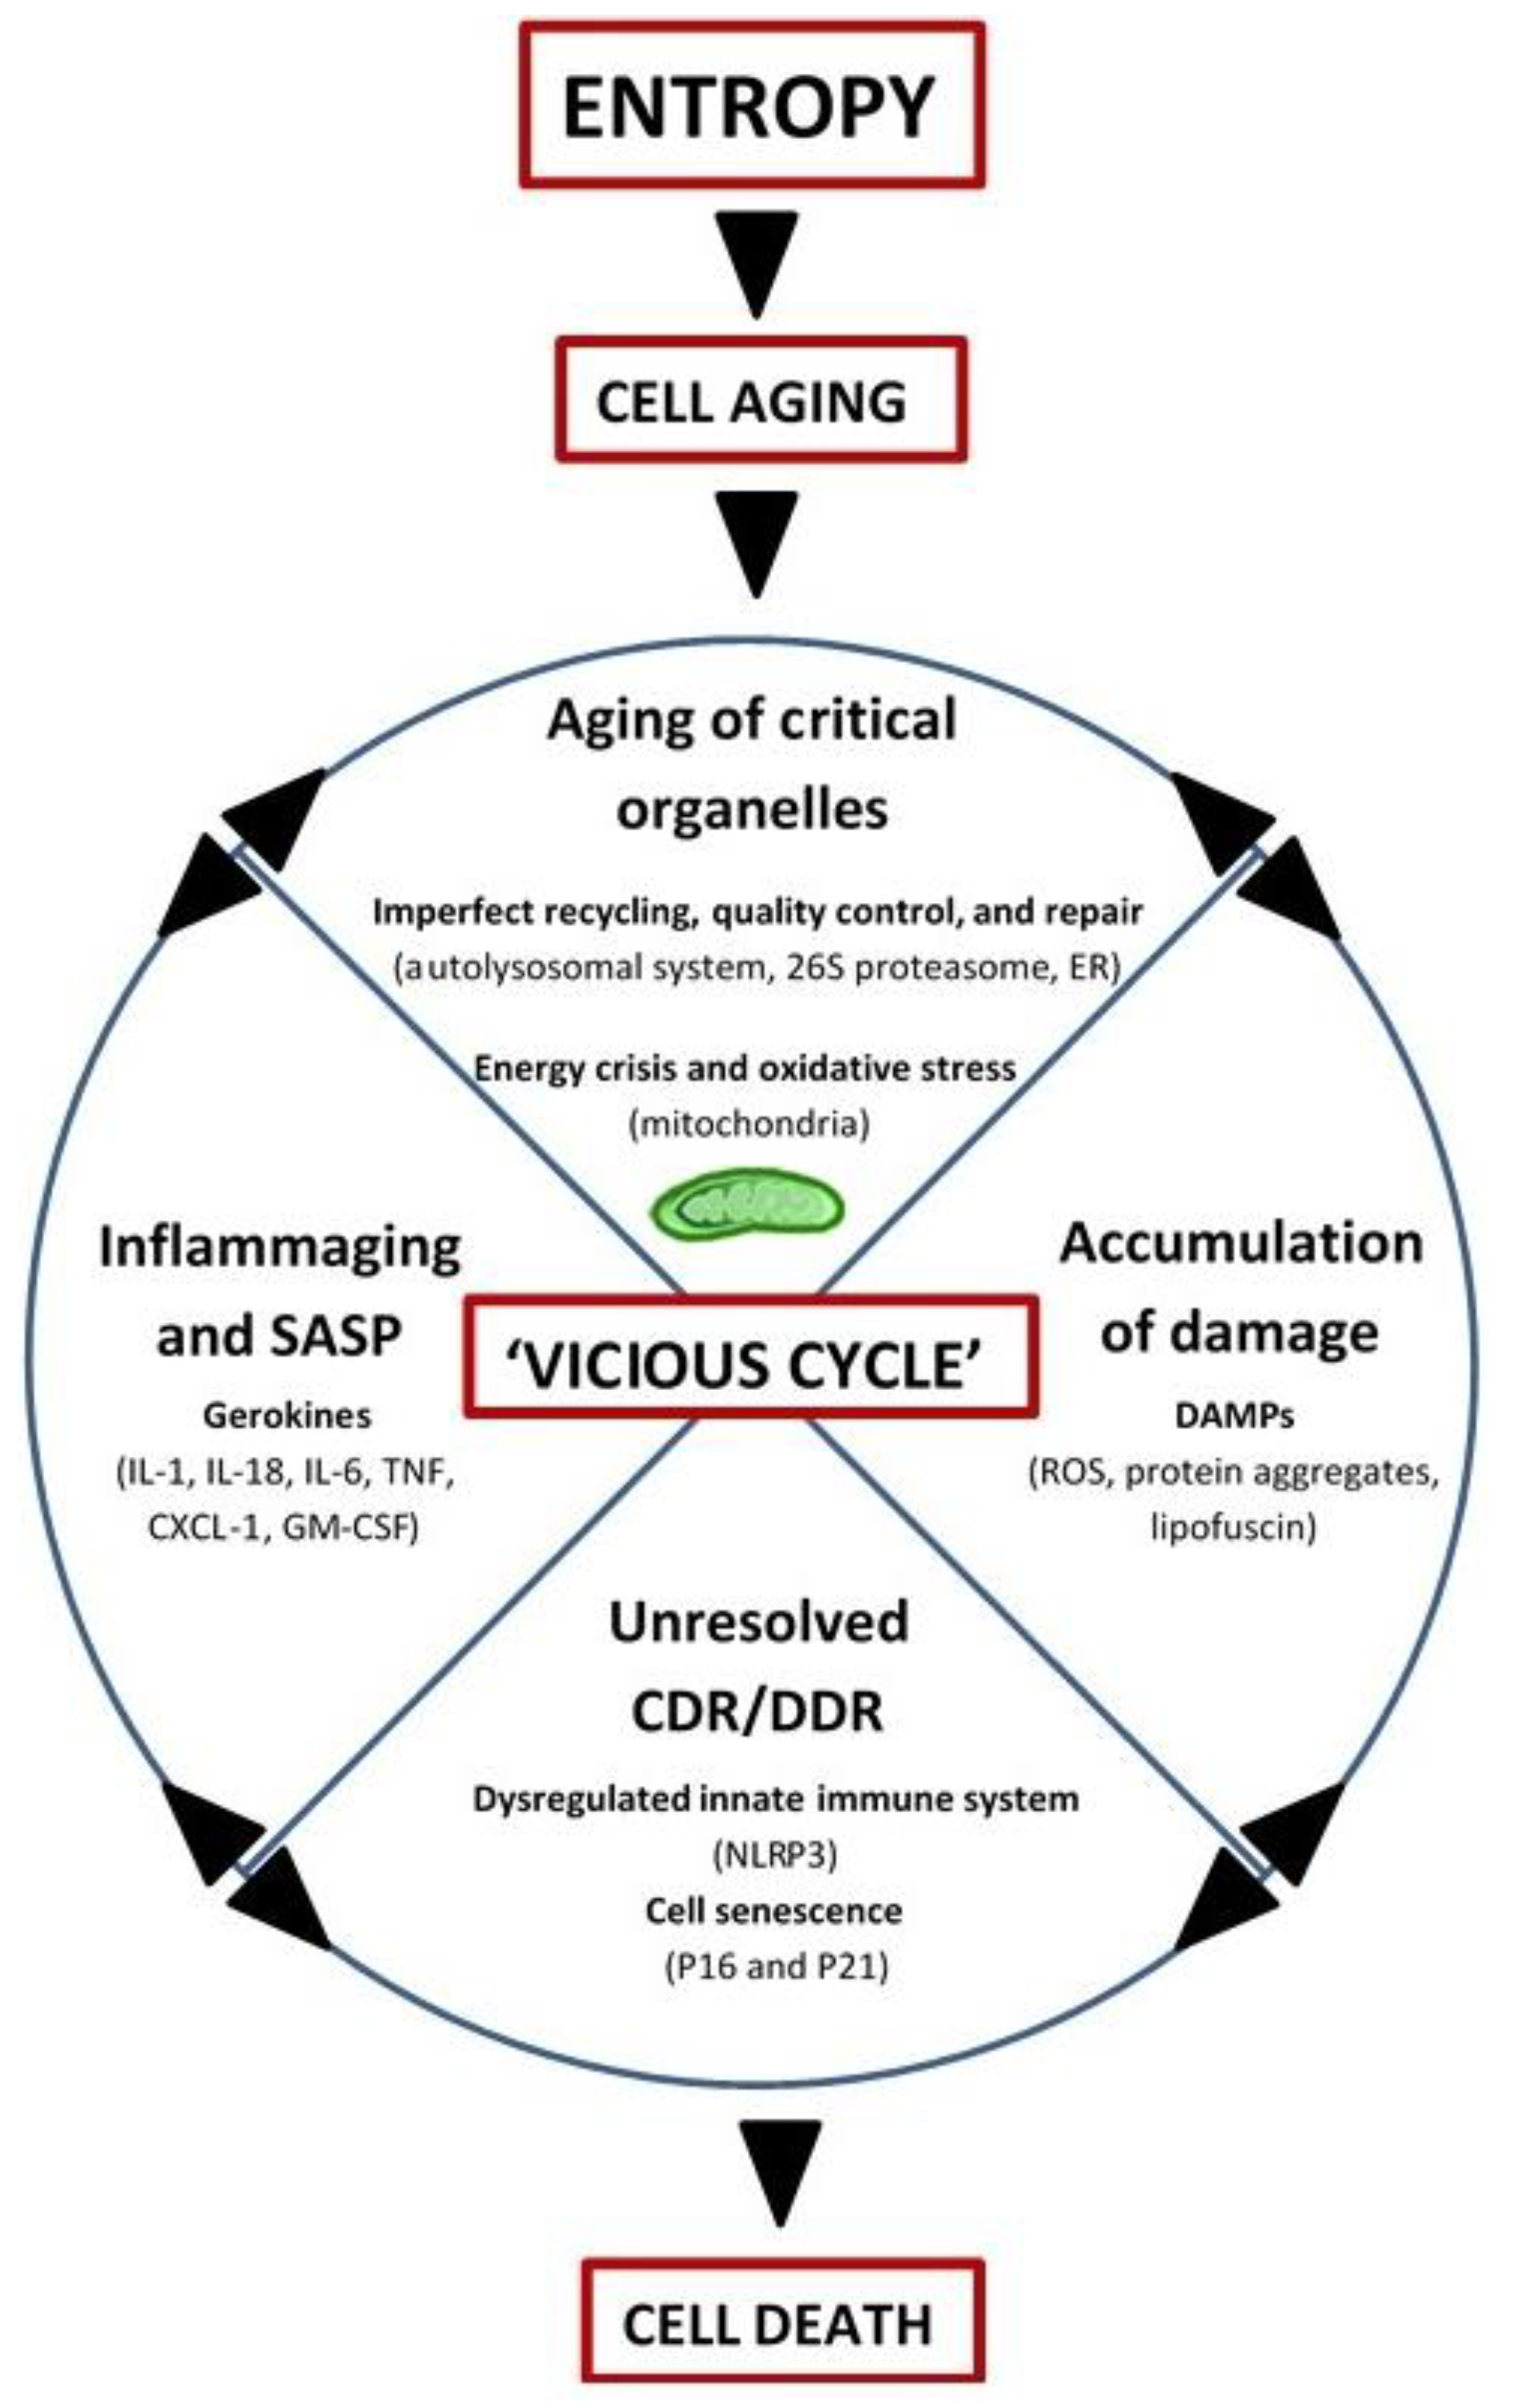 Impaired Recycling Of Mitochondria In >> Biology Free Full Text Mitochondria And Aging The Role